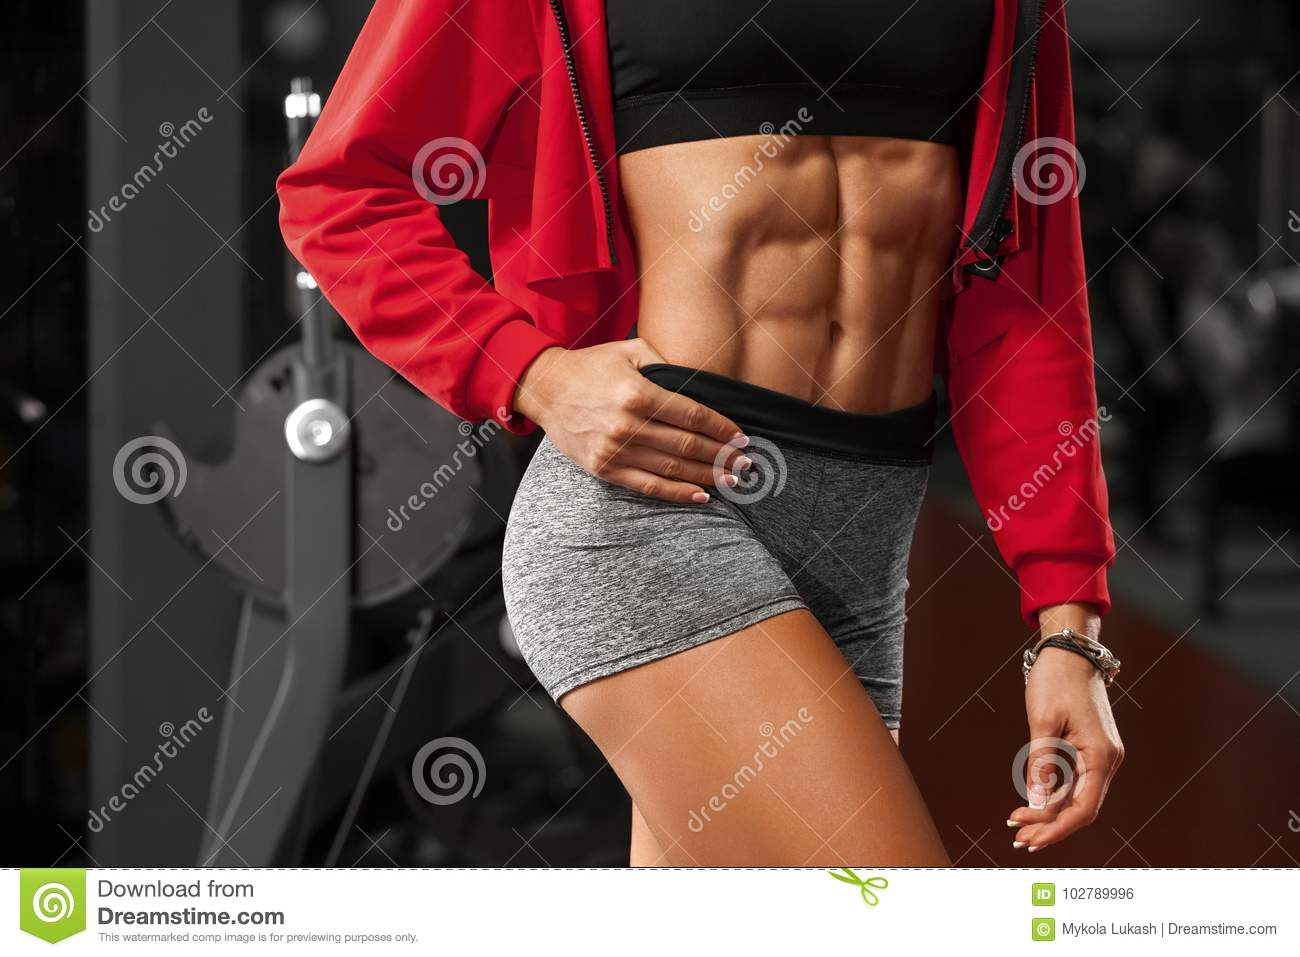 Fitness woman showing abs and flat belly in gym. Beautiful athletic girl, shaped abdominal, slim waist